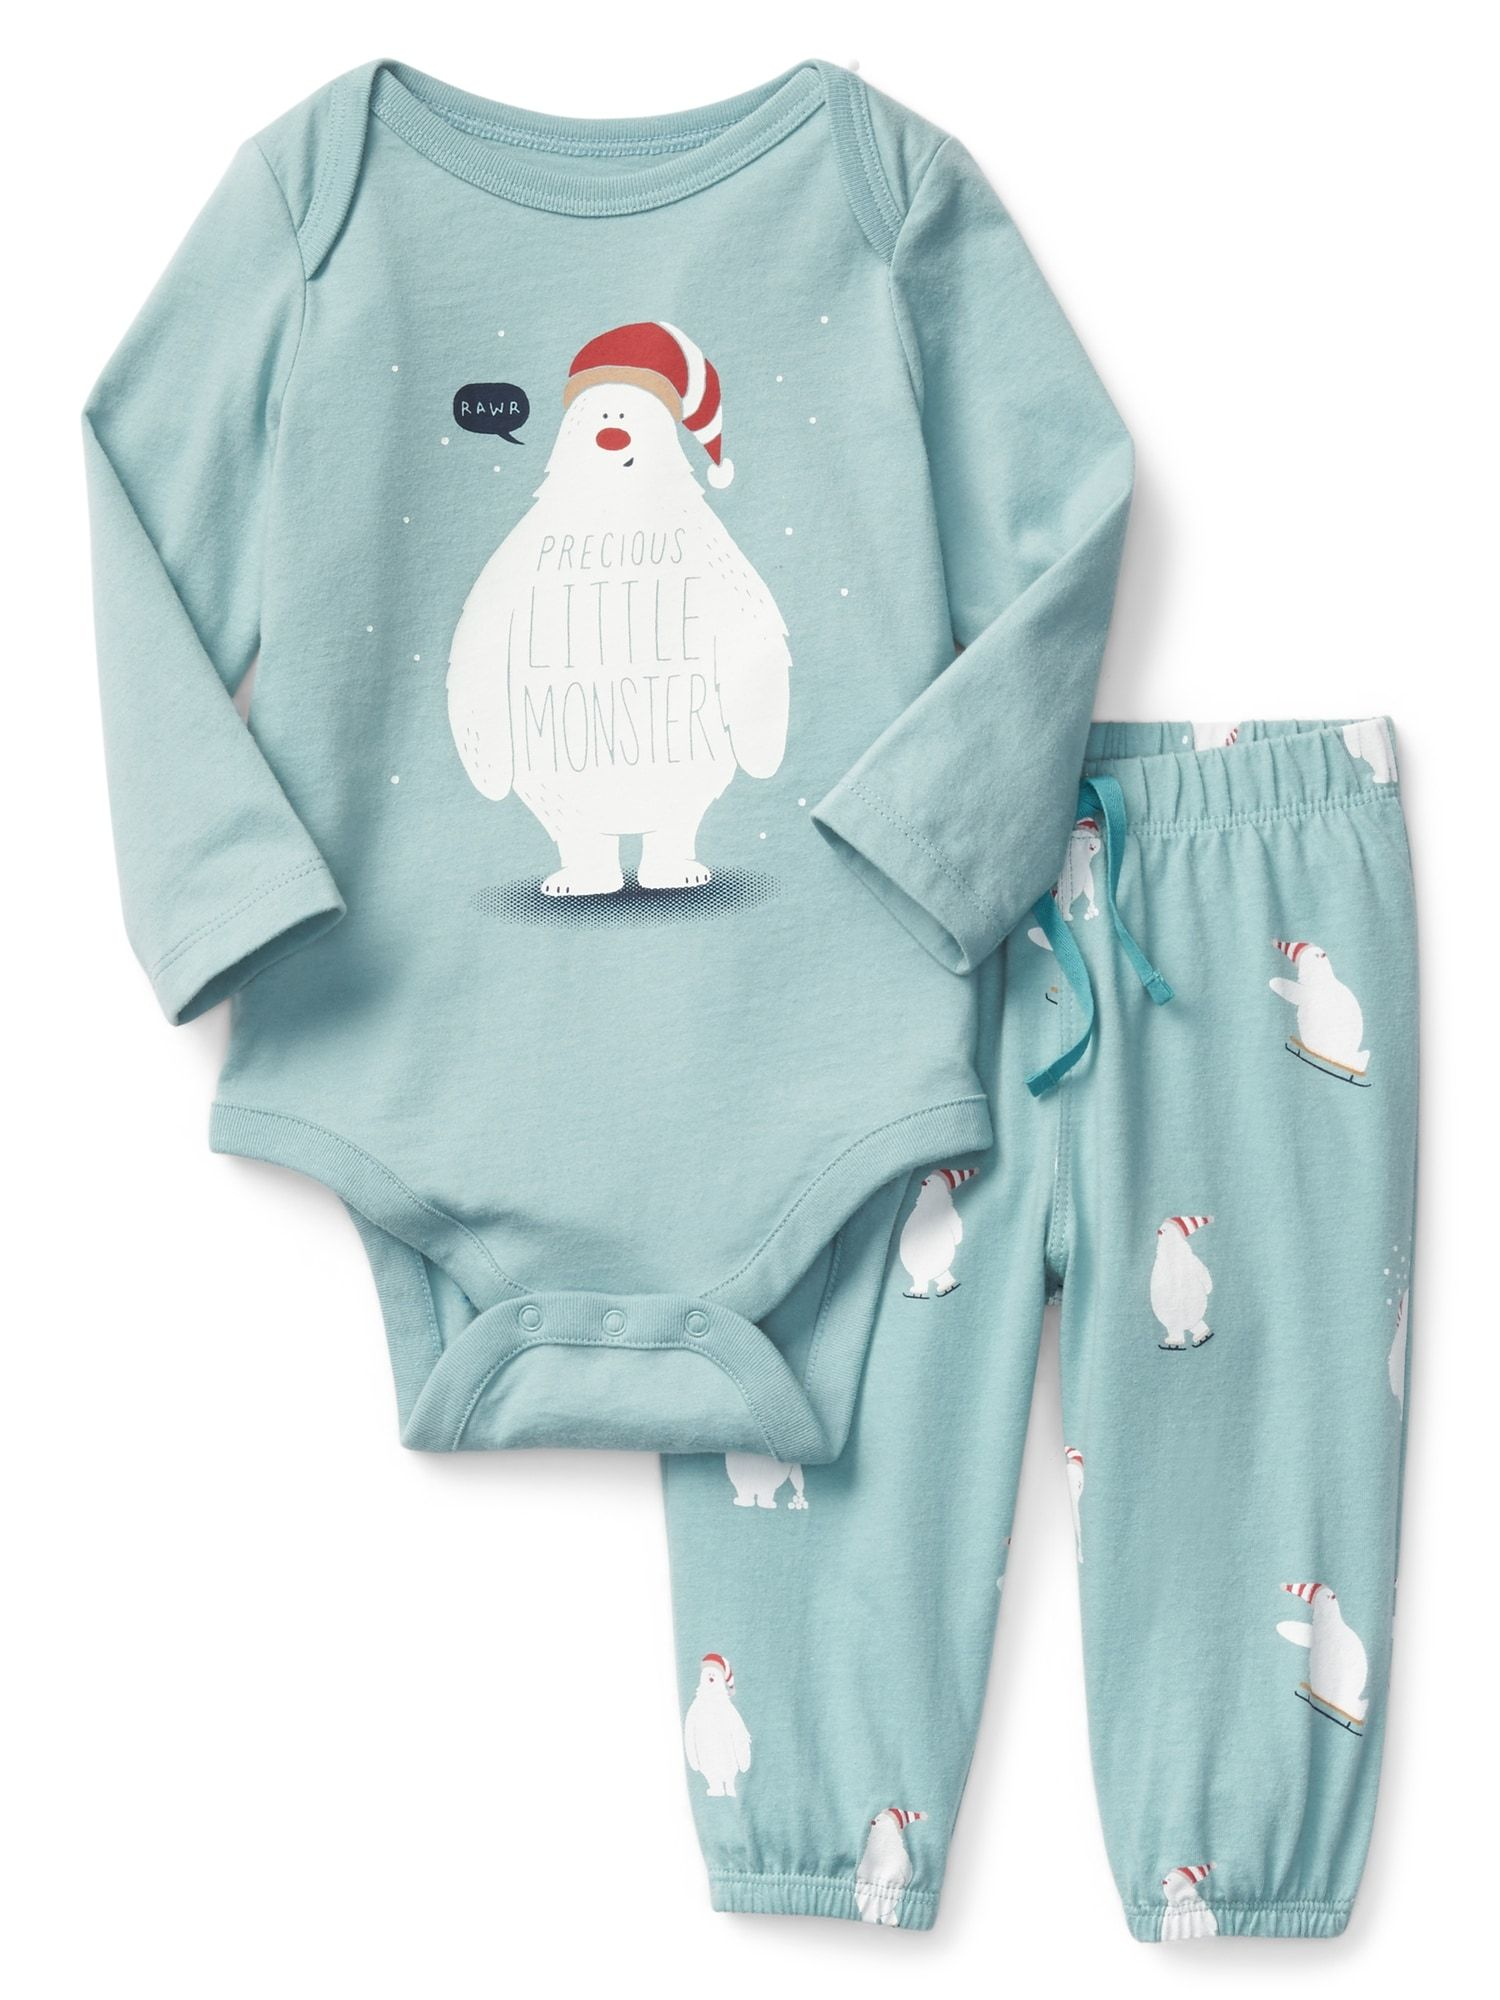 product photo future baby stuff boy and girl Pinterest